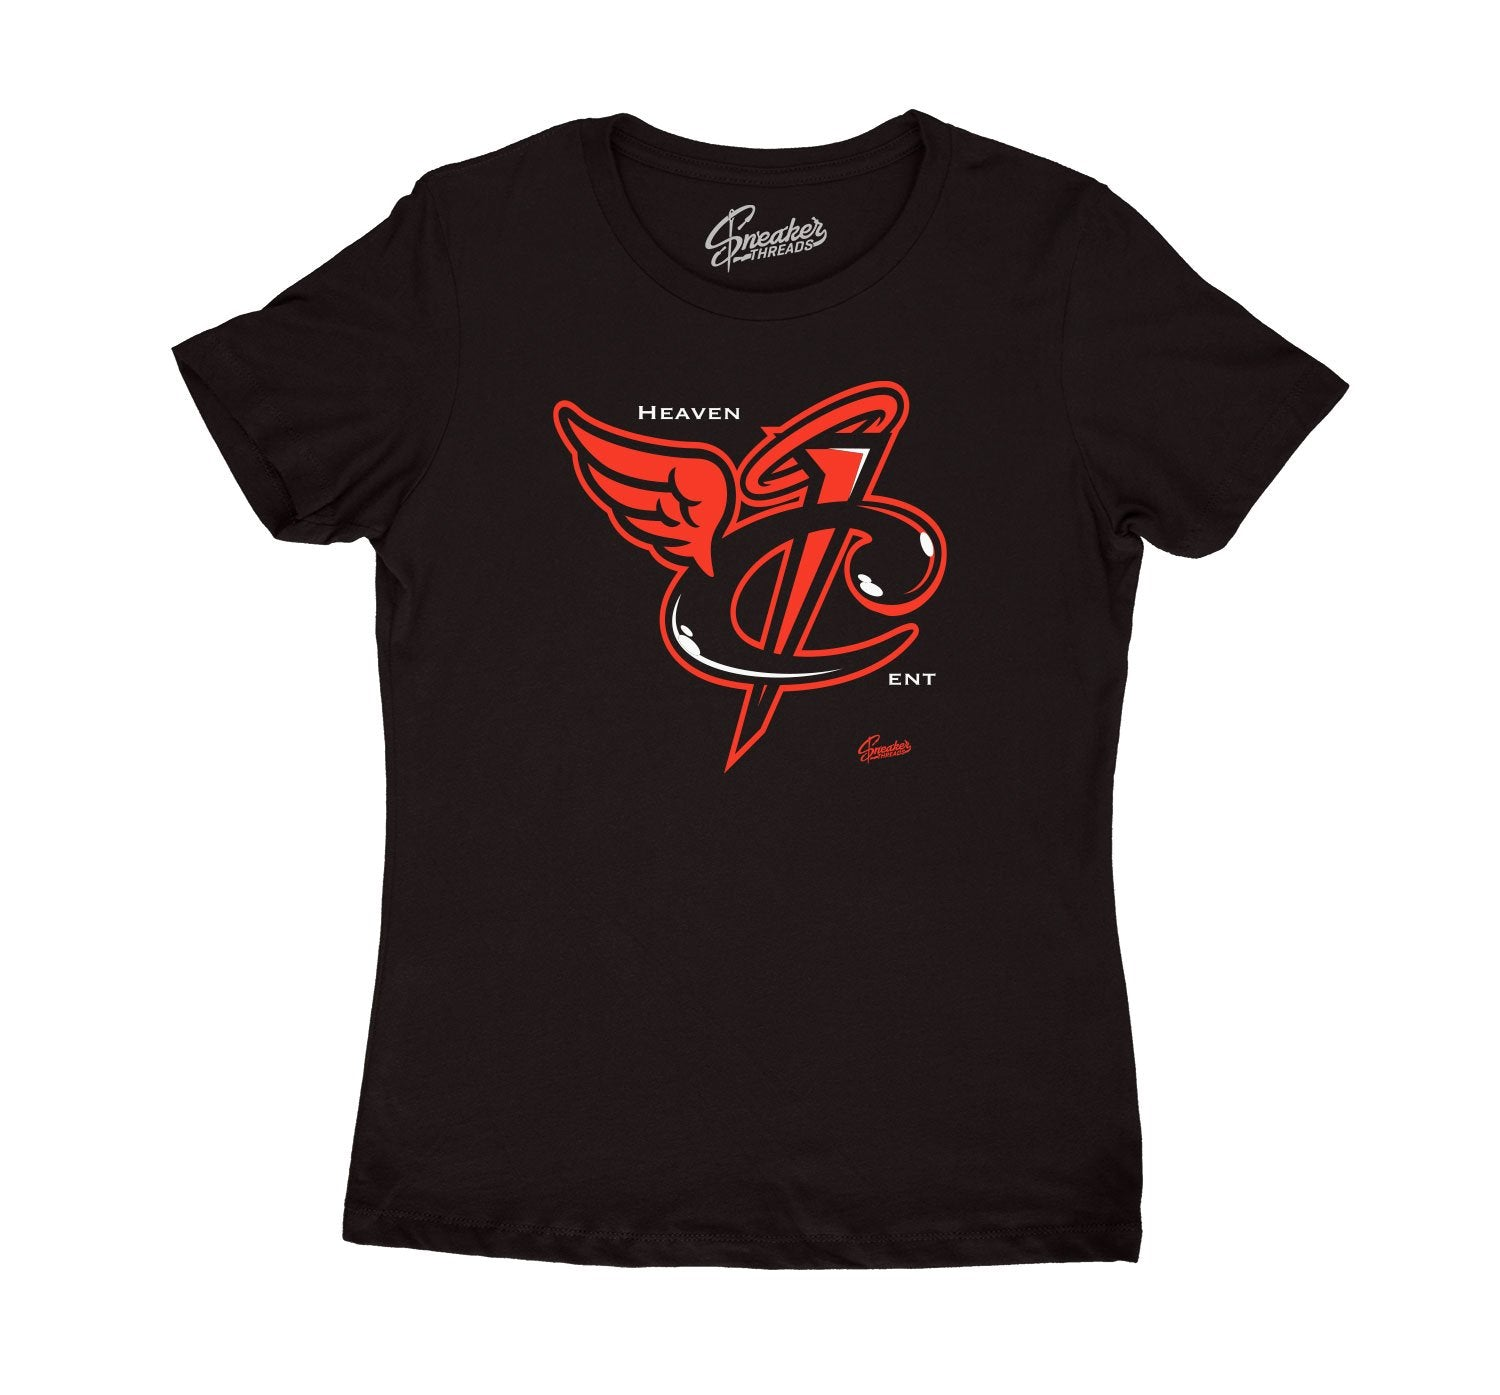 Womens sneaker tees match foamposote lava crimson.